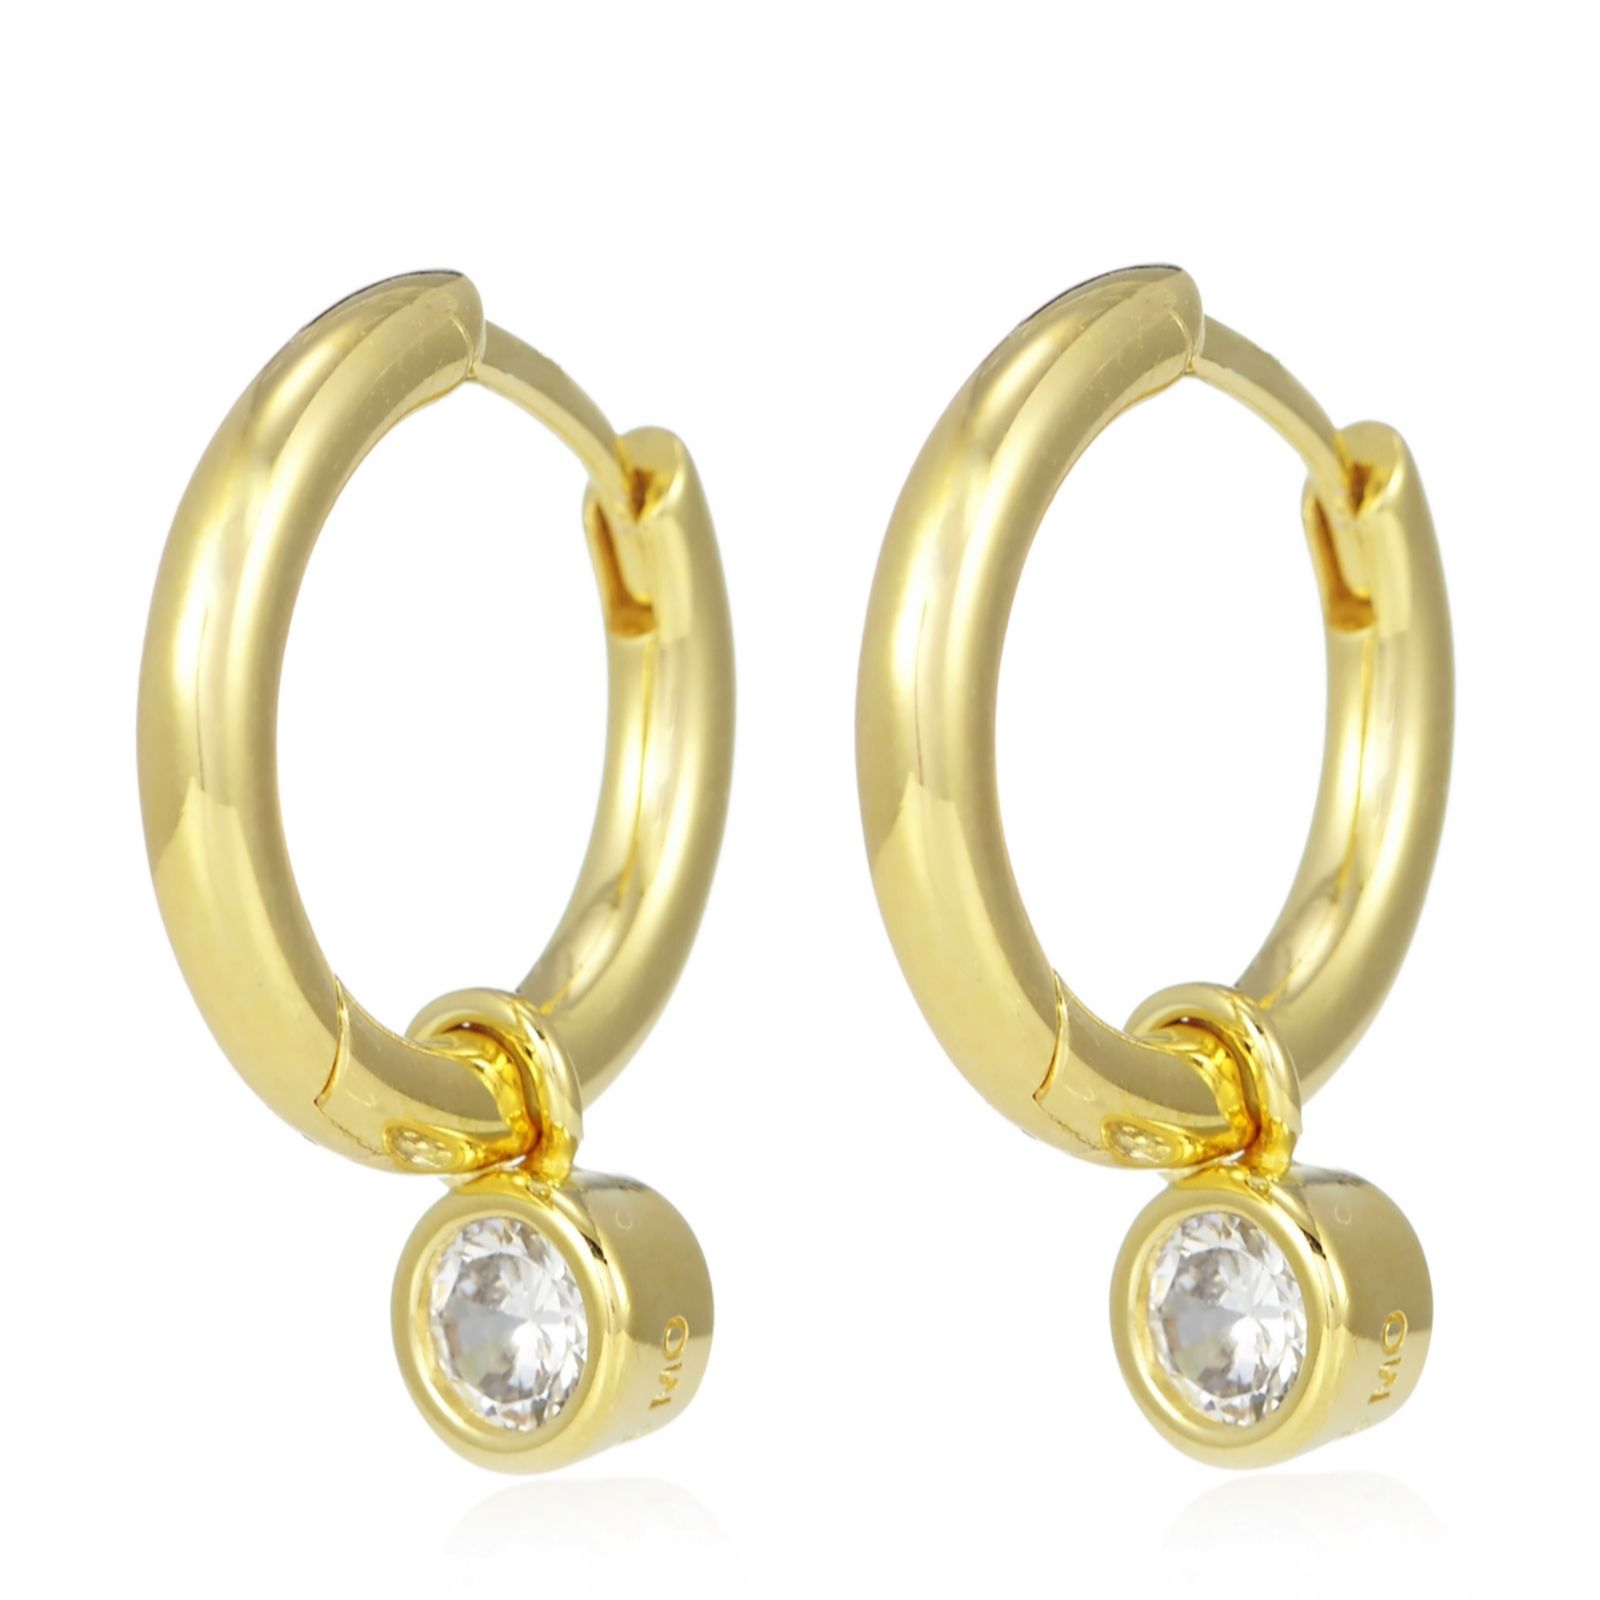 3c353455ef994 Escape by Melissa Odabash Motif Hoop Earrings Sterling Silver - QVC UK